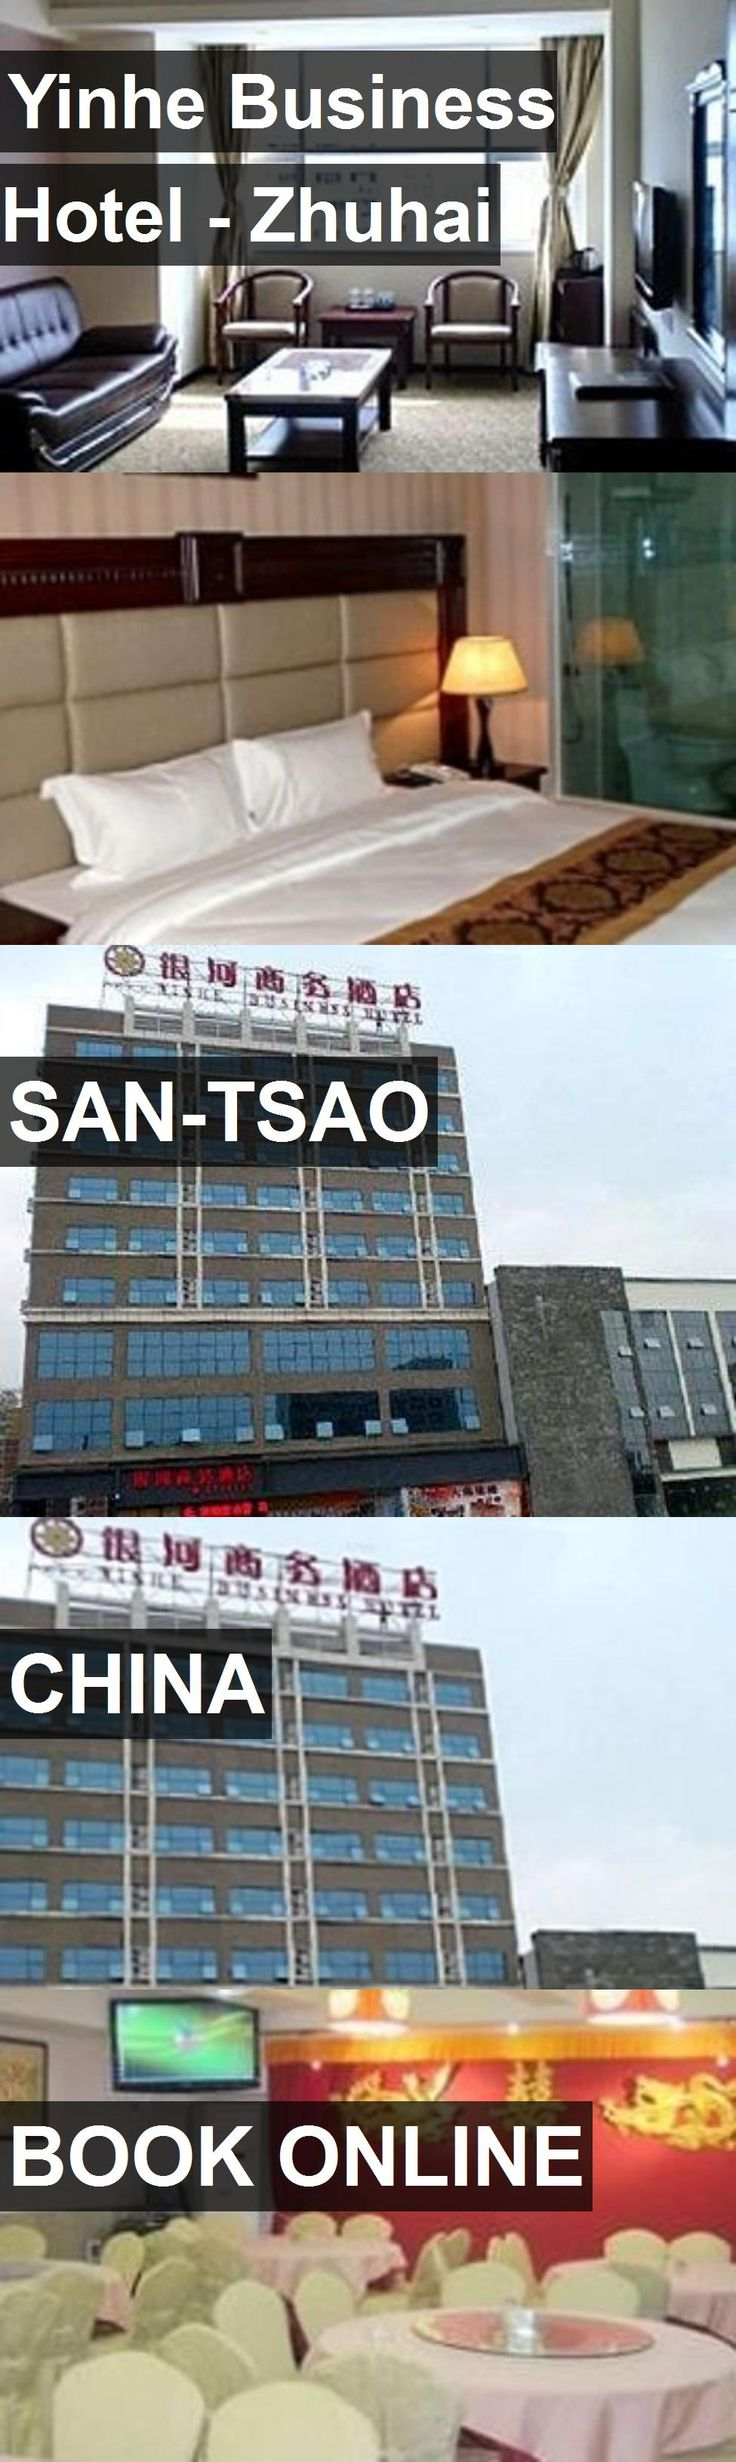 Yinhe Business Hotel - Zhuhai in San-tsao, China. For more information, photos, reviews and best prices please follow the link. #China #San-tsao #travel #vacation #hotel